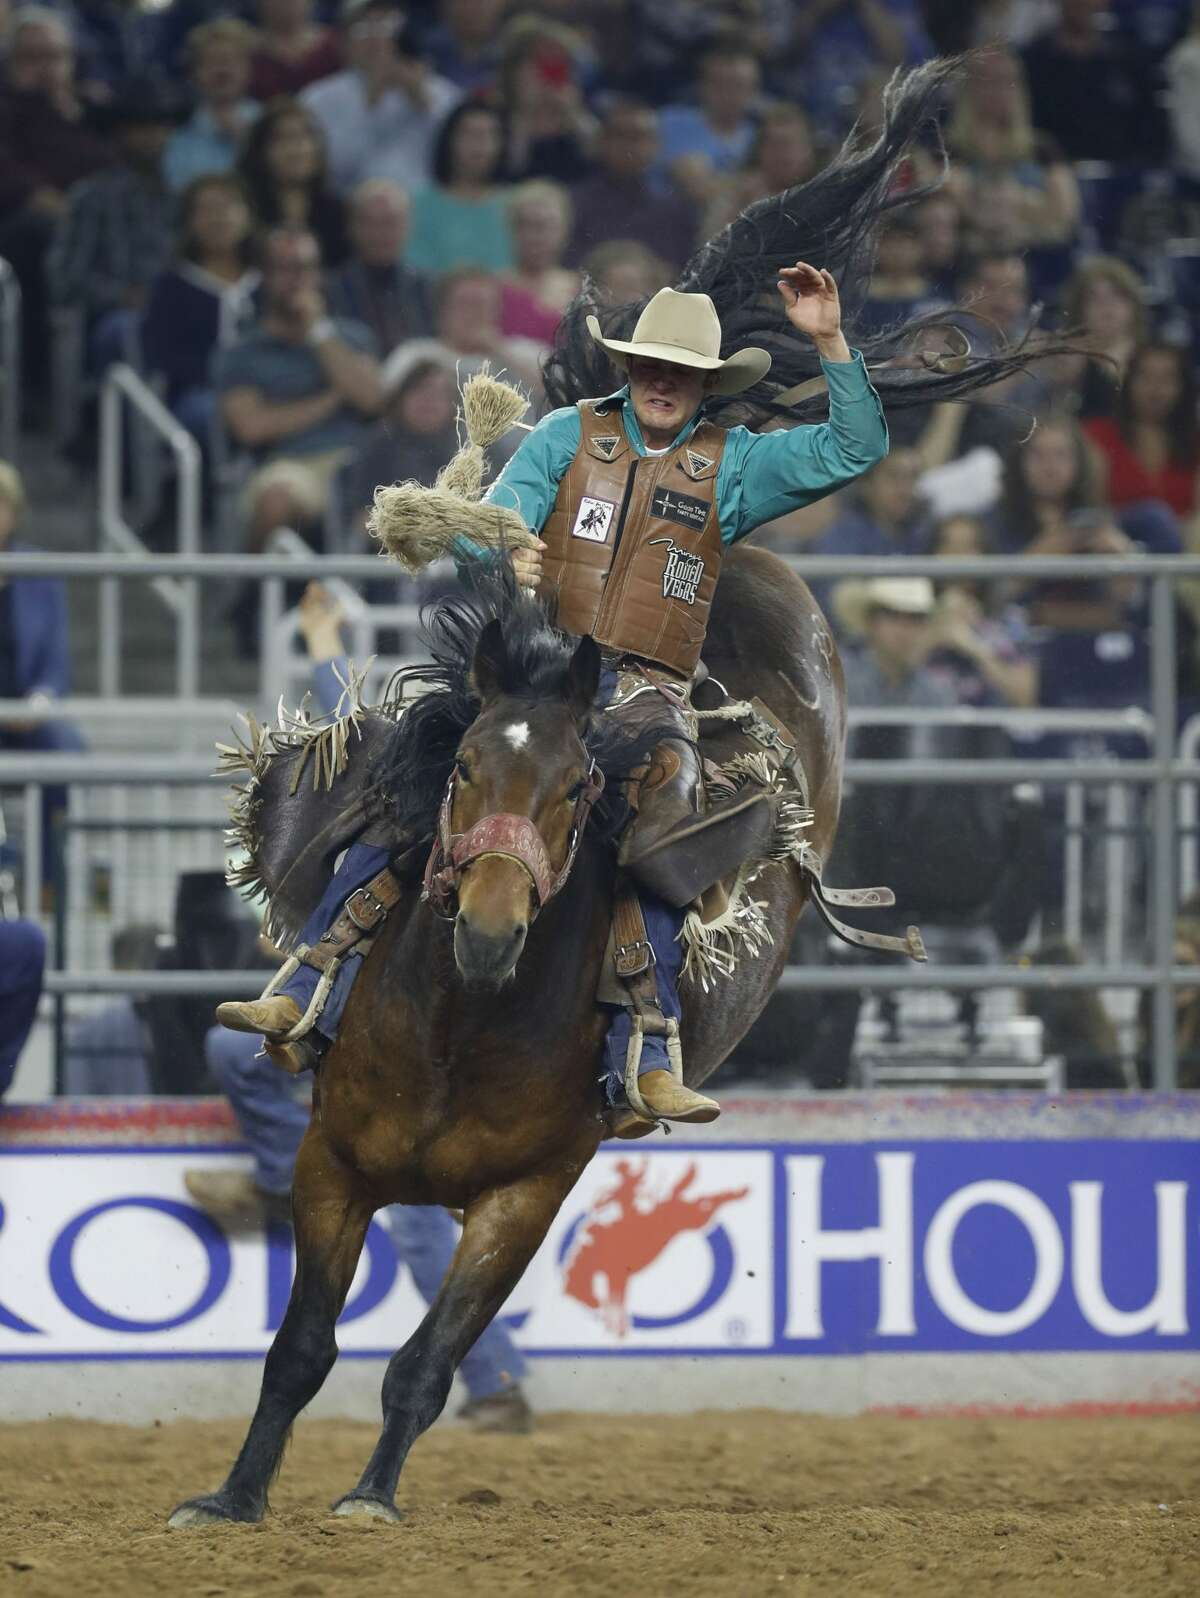 Clay Elliot rides Urgent Delivery putting him in first place during the saddle bronc riding, wild card competition at the Houston Livestock Show and Rodeo at NRG Park, Friday, March 24, 2017, in Houston. ( Karen Warren / Houston Chronicle )